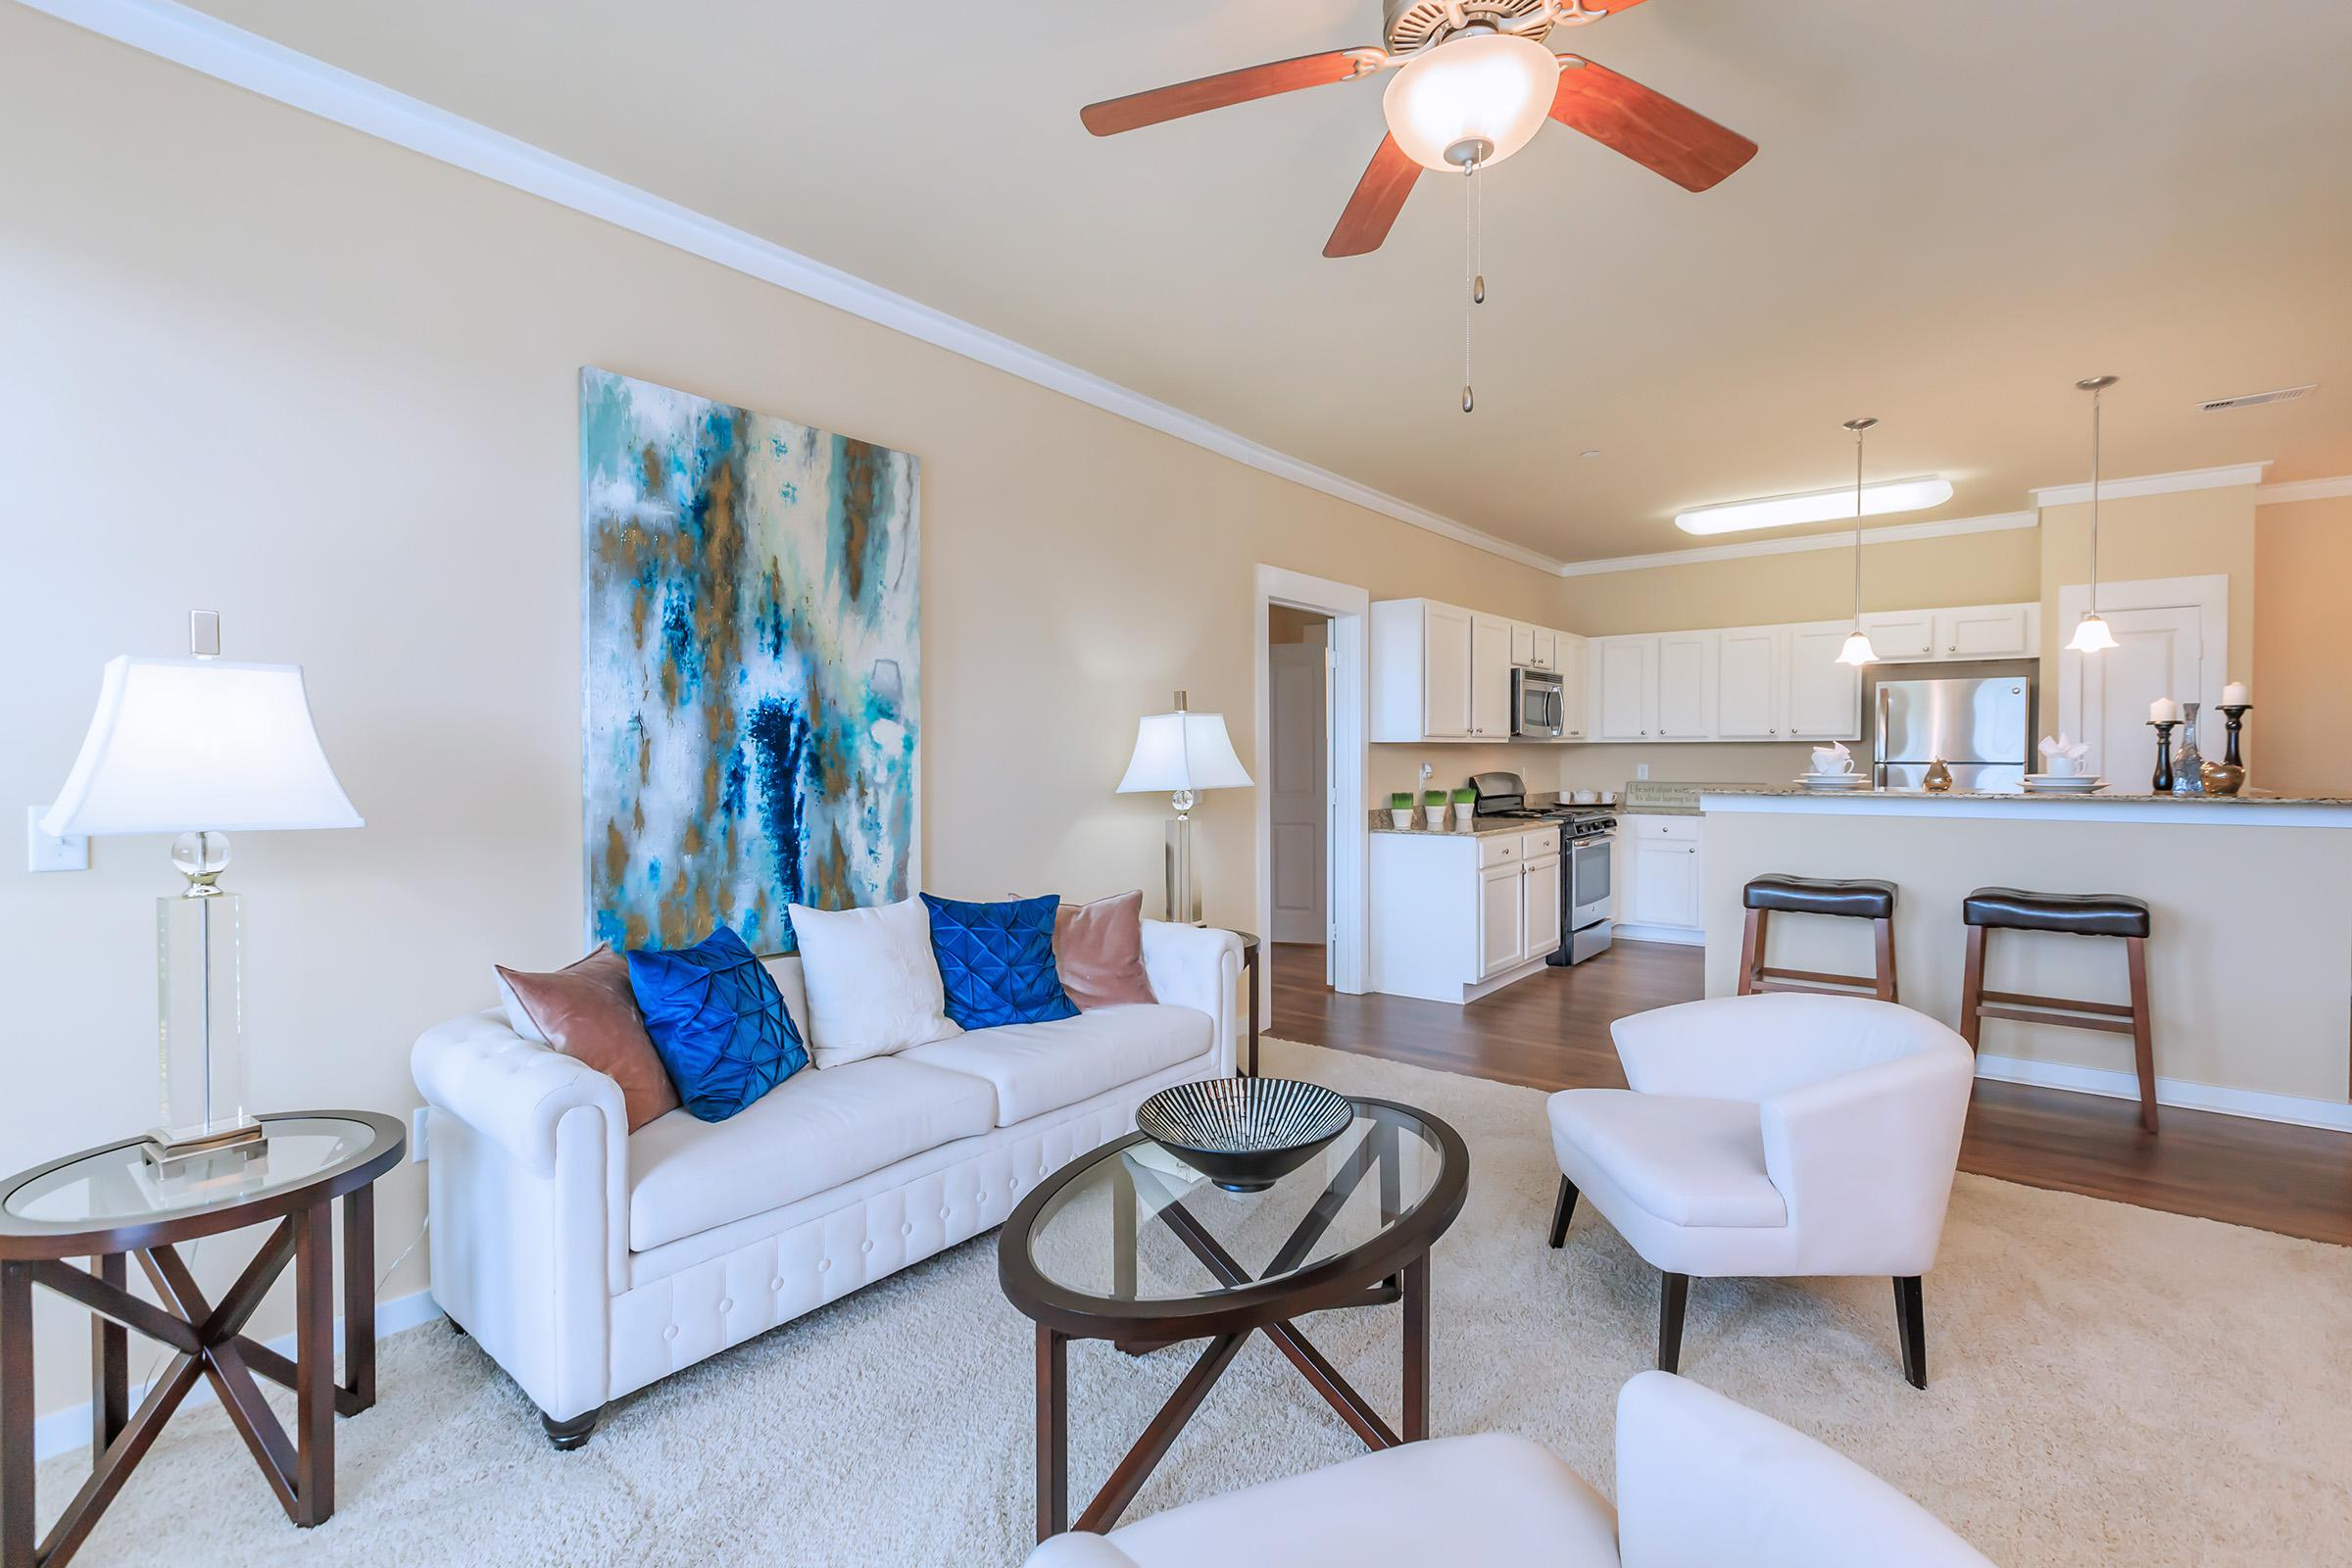 SPACIOUS APARTMENTS FOR RENT IN BILOXI, MS.